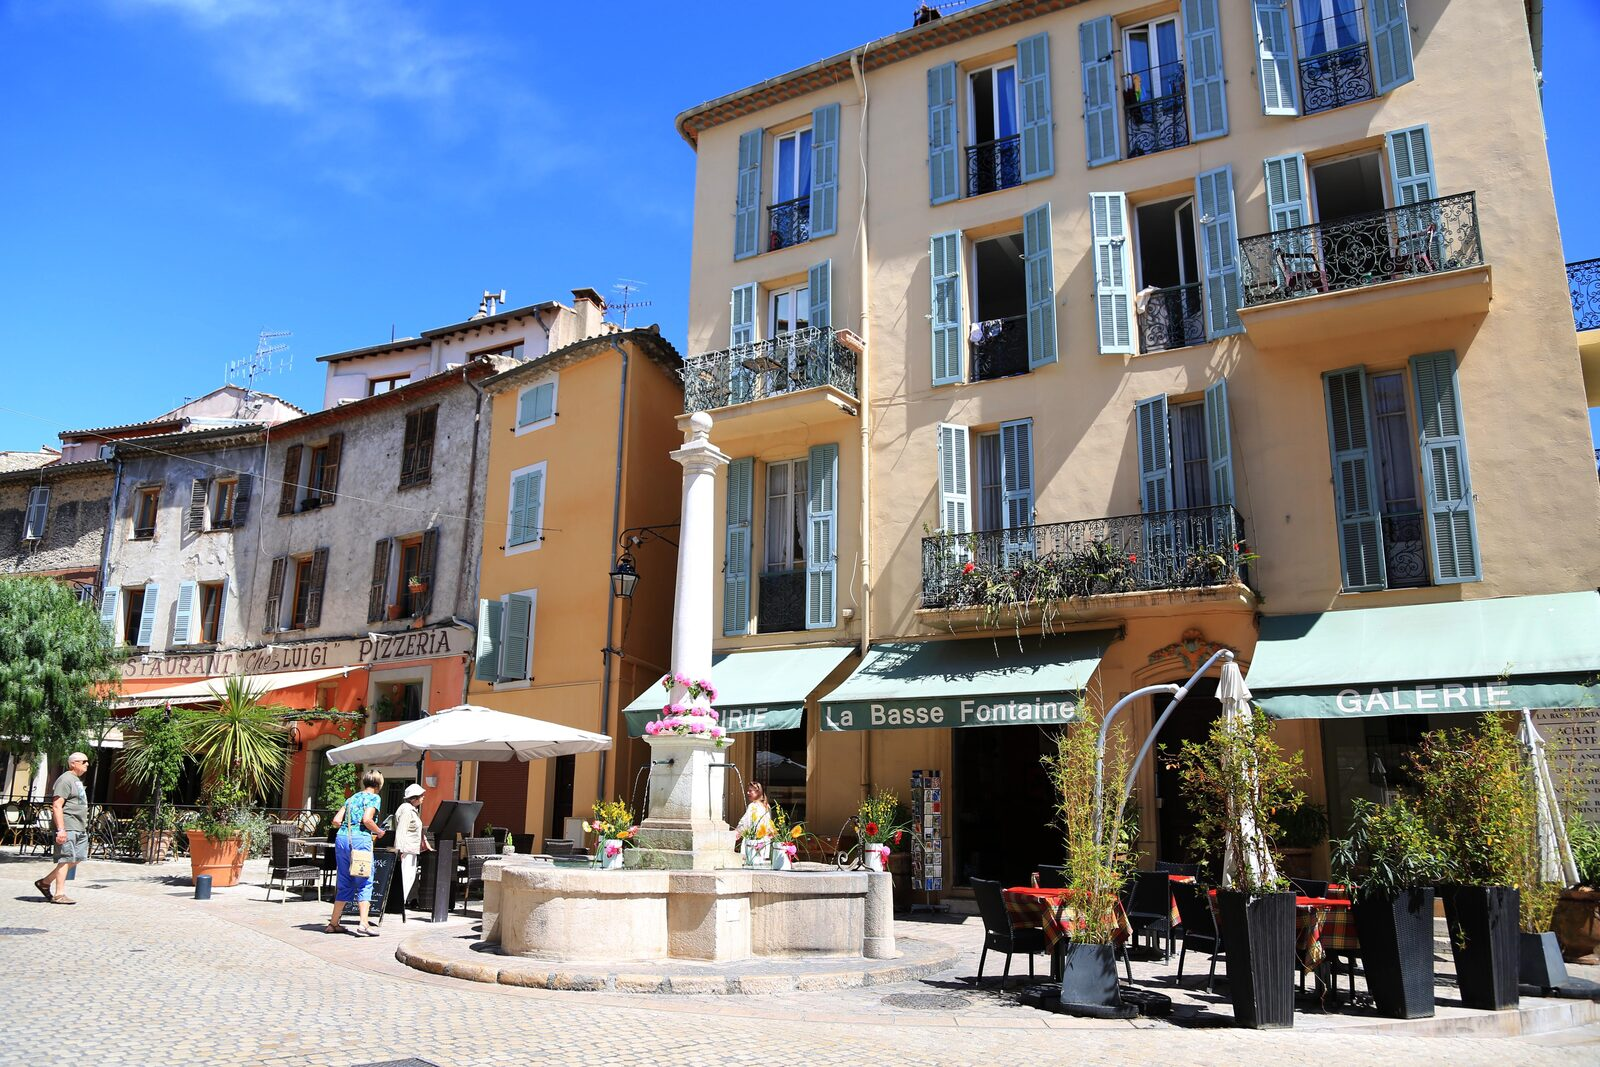 Historical and artistic features of Vence